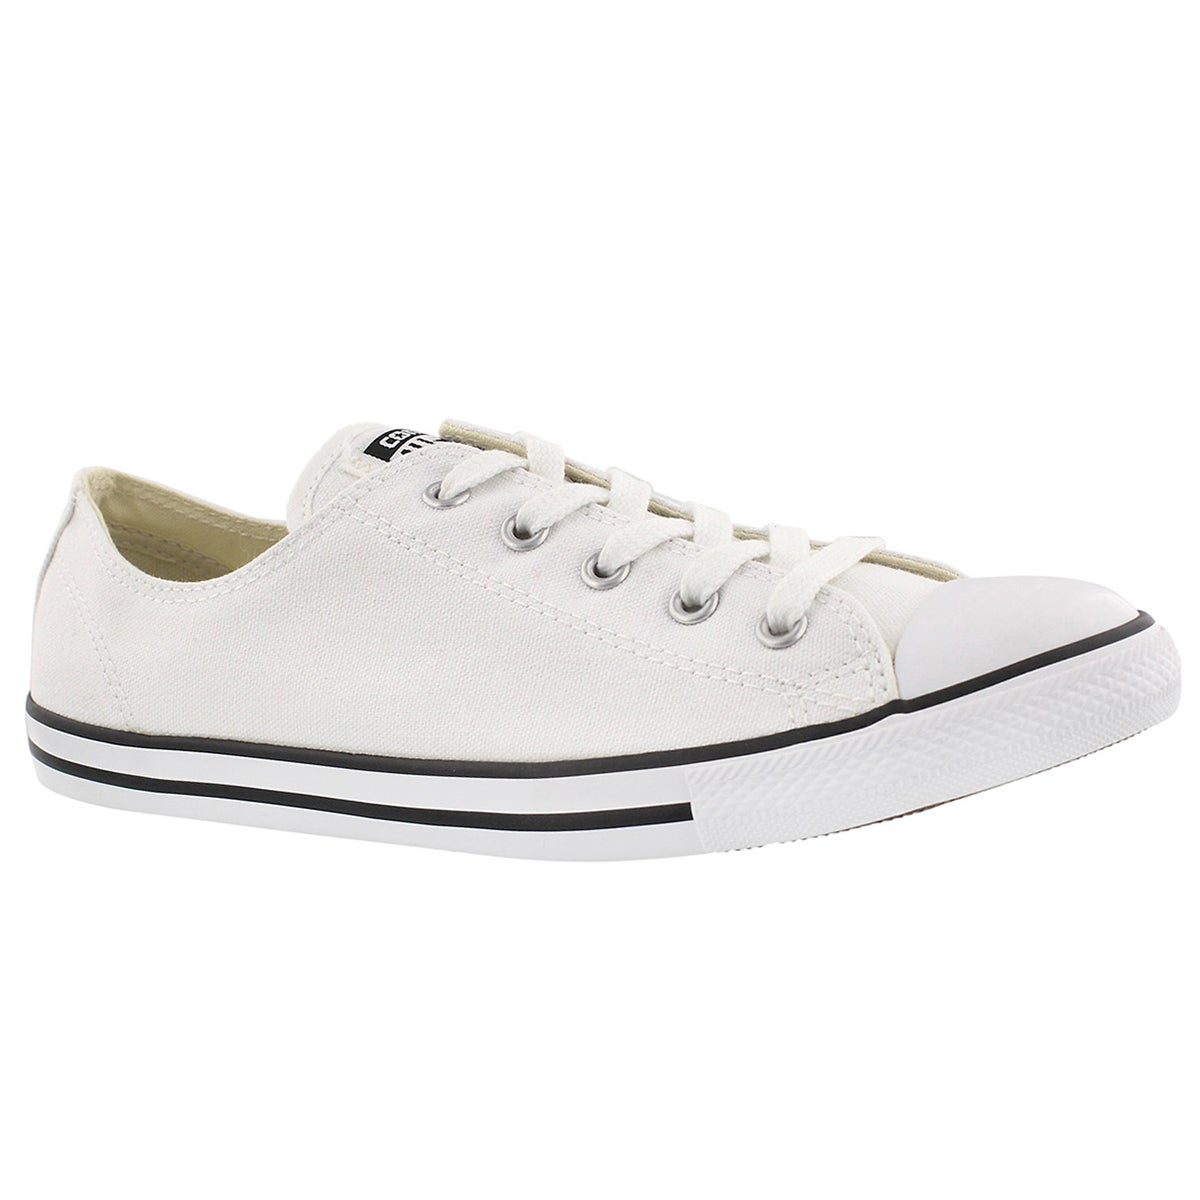 Women's CT ALL STAR DAINTY CANVAS white oxfords